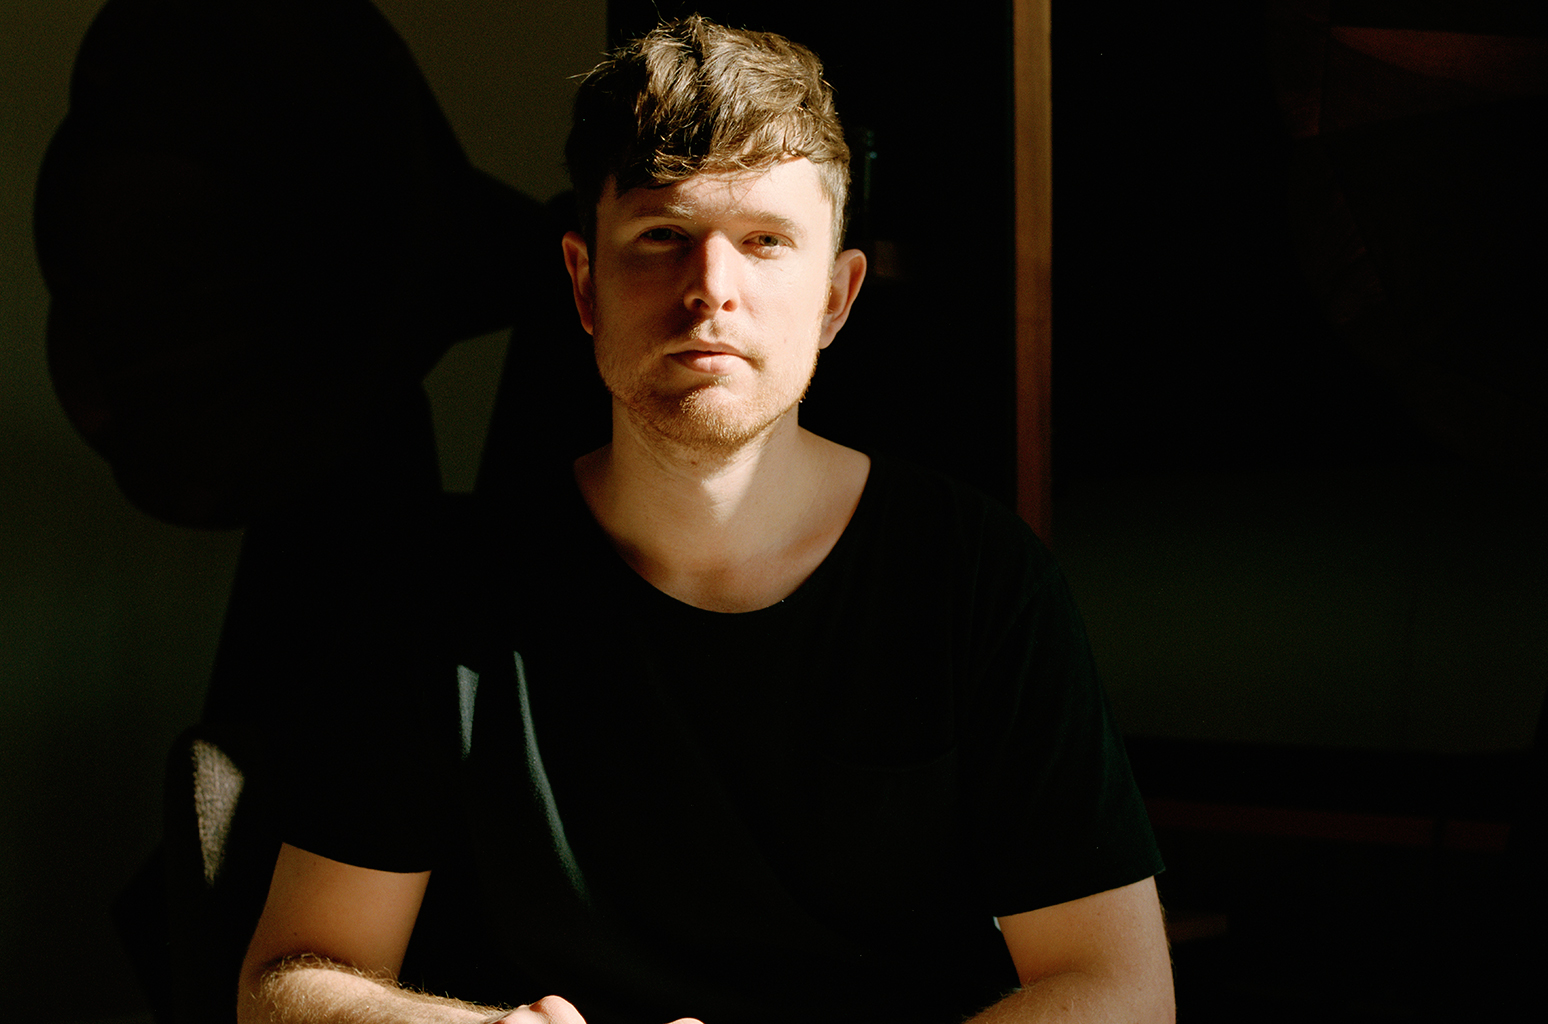 james-blake-2019-press-cr-Amanda-Charchian-billboard-1548.jpg